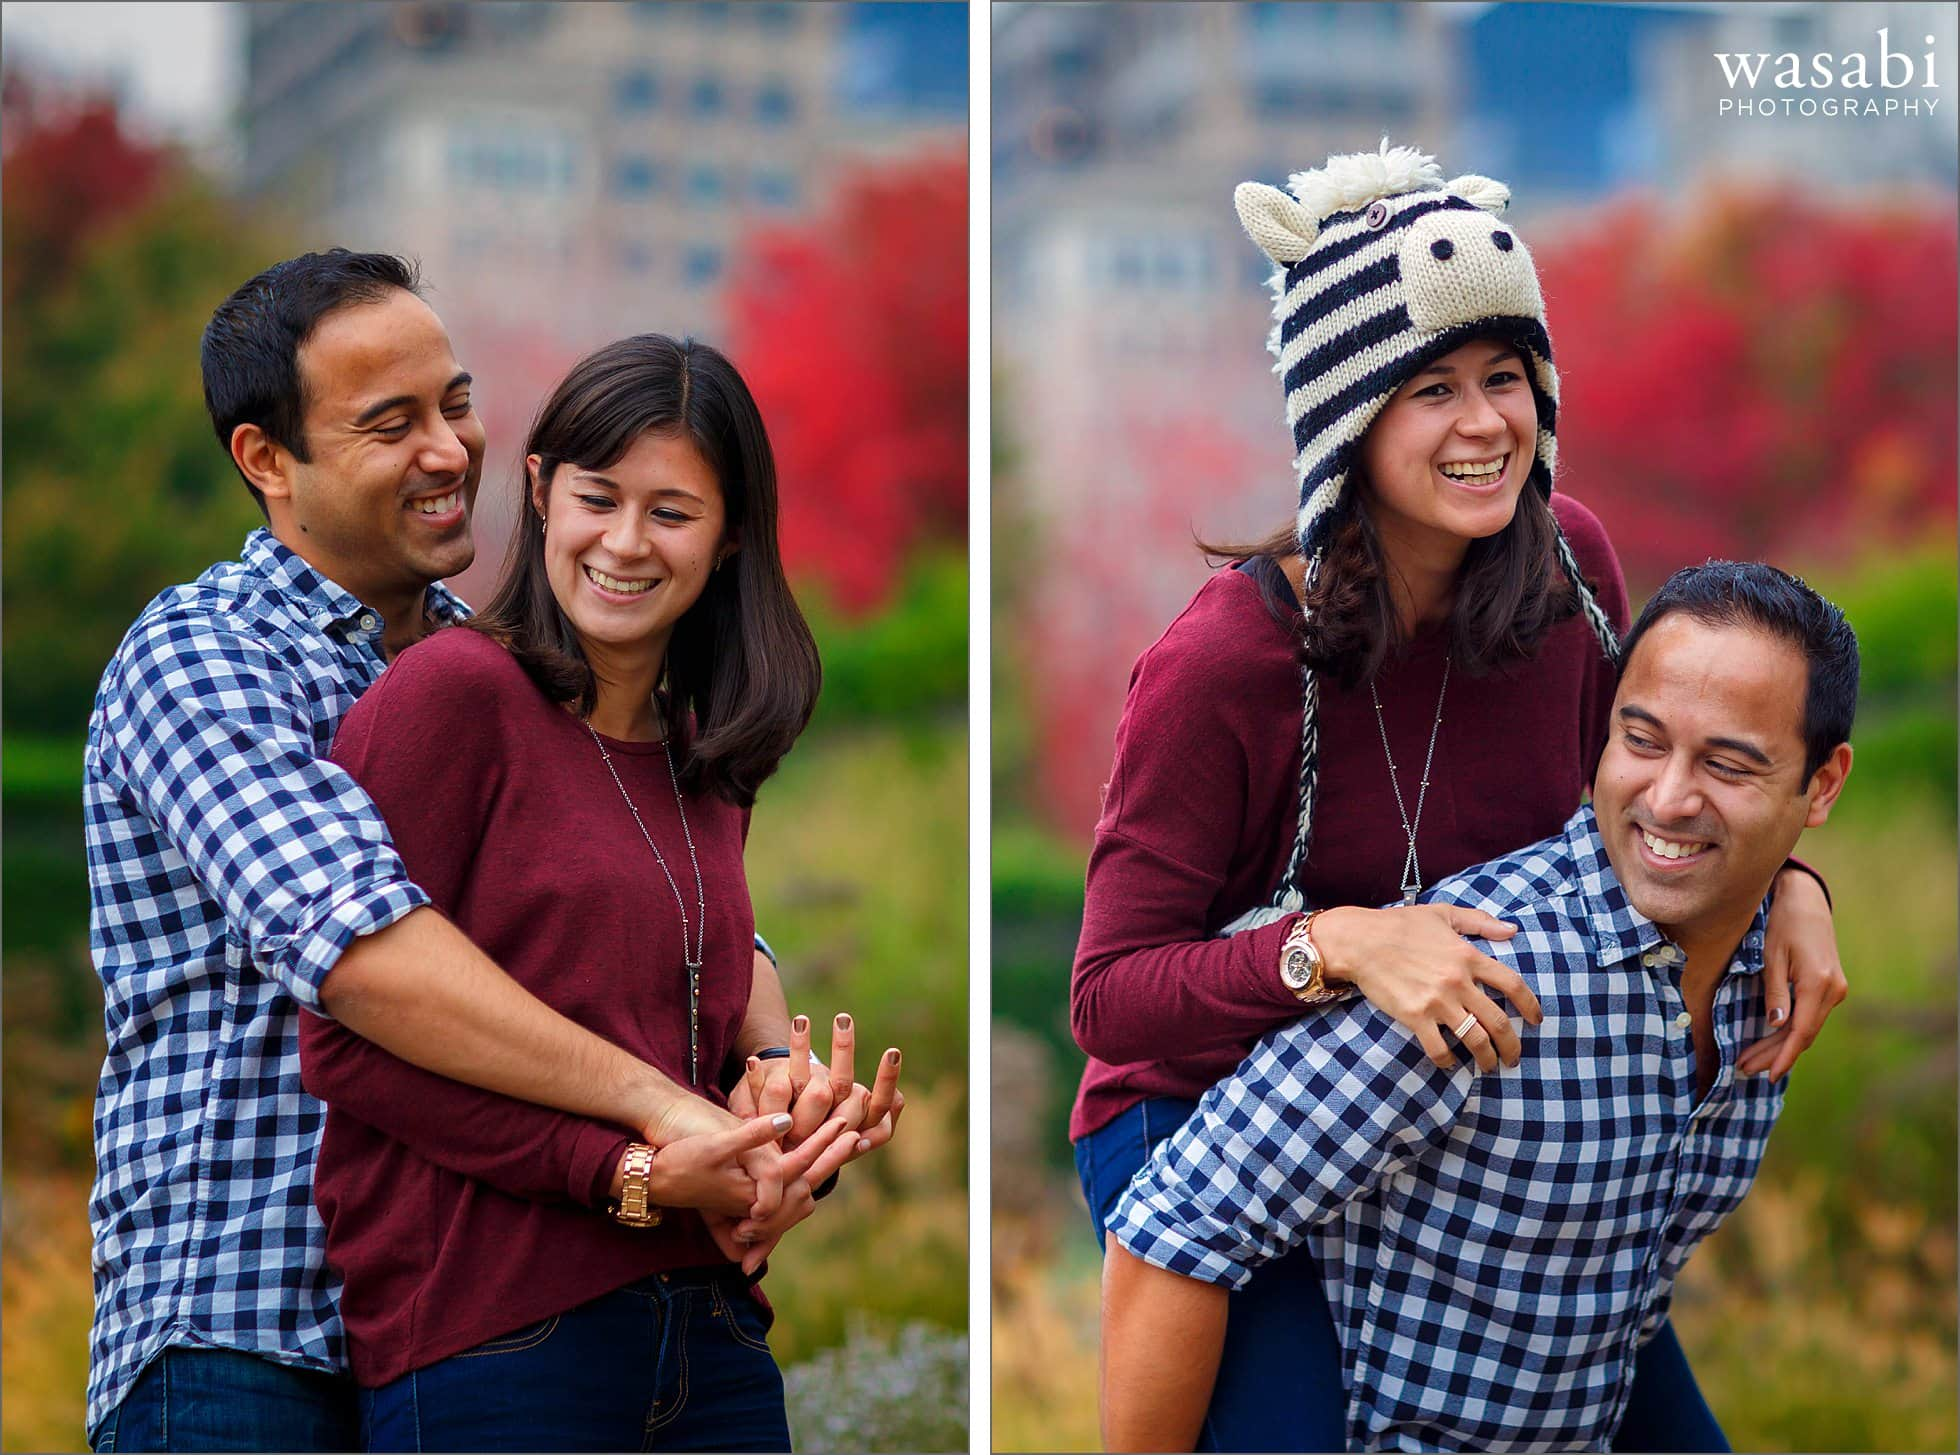 millennium-park-lurie-garden-engagement-photos-02